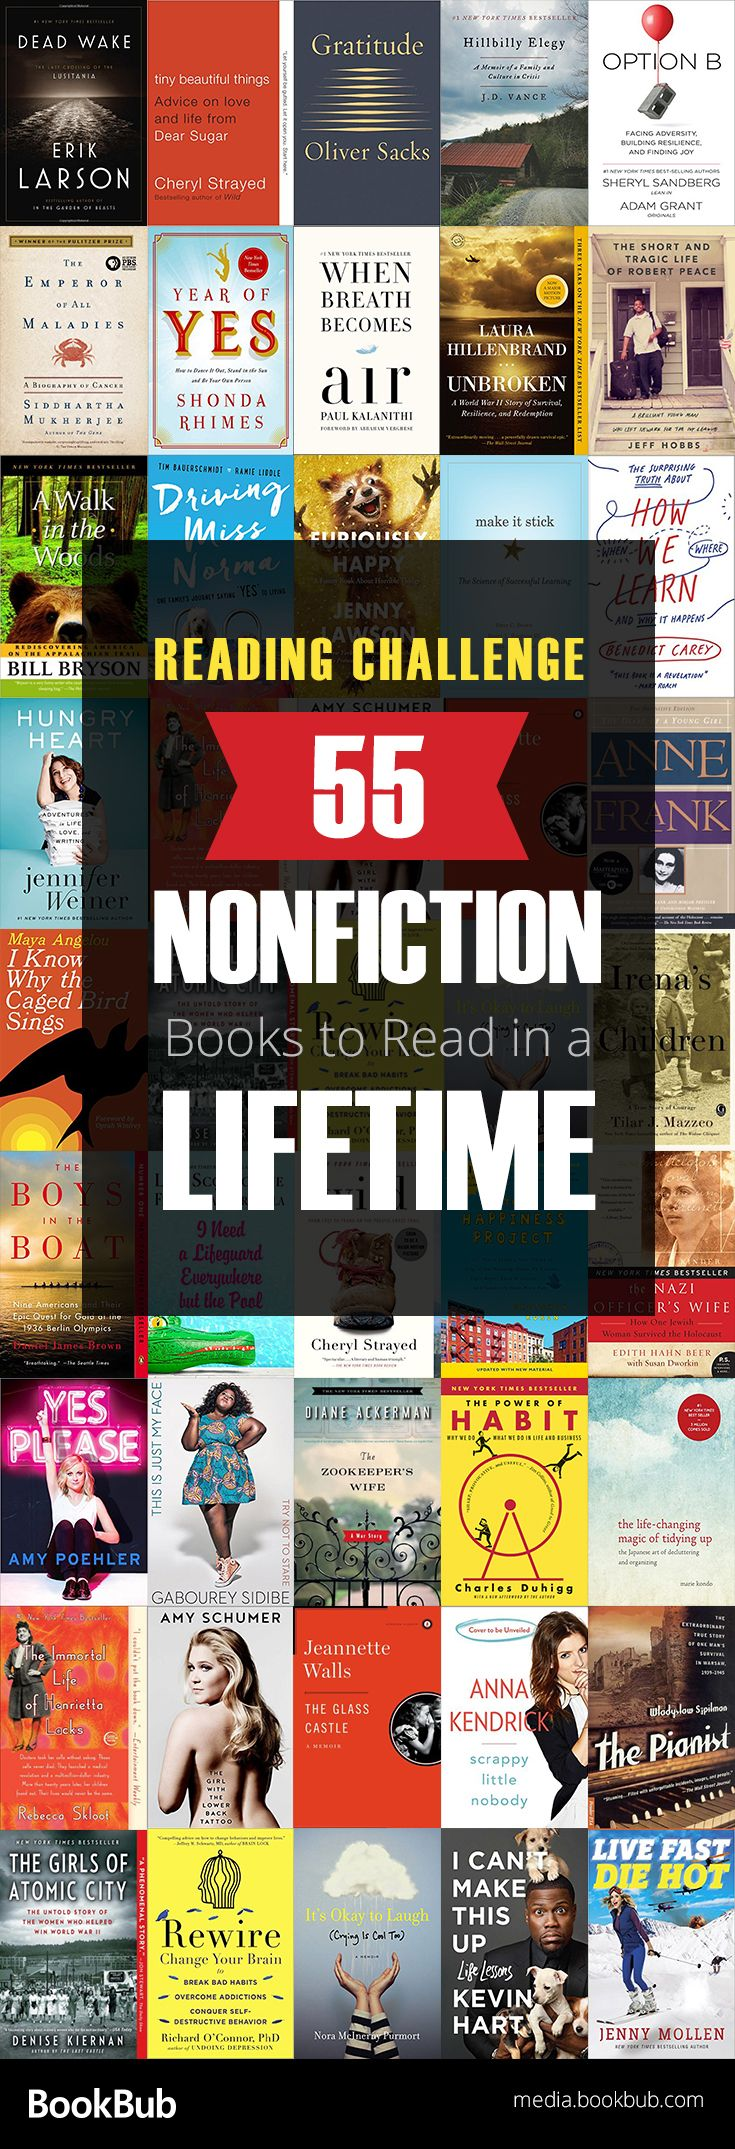 Check out our nonfiction read challenge. Featuring 55 nonfiction books to read in a lifetime, including inspirational true stories, historical books, memoirs, and more.